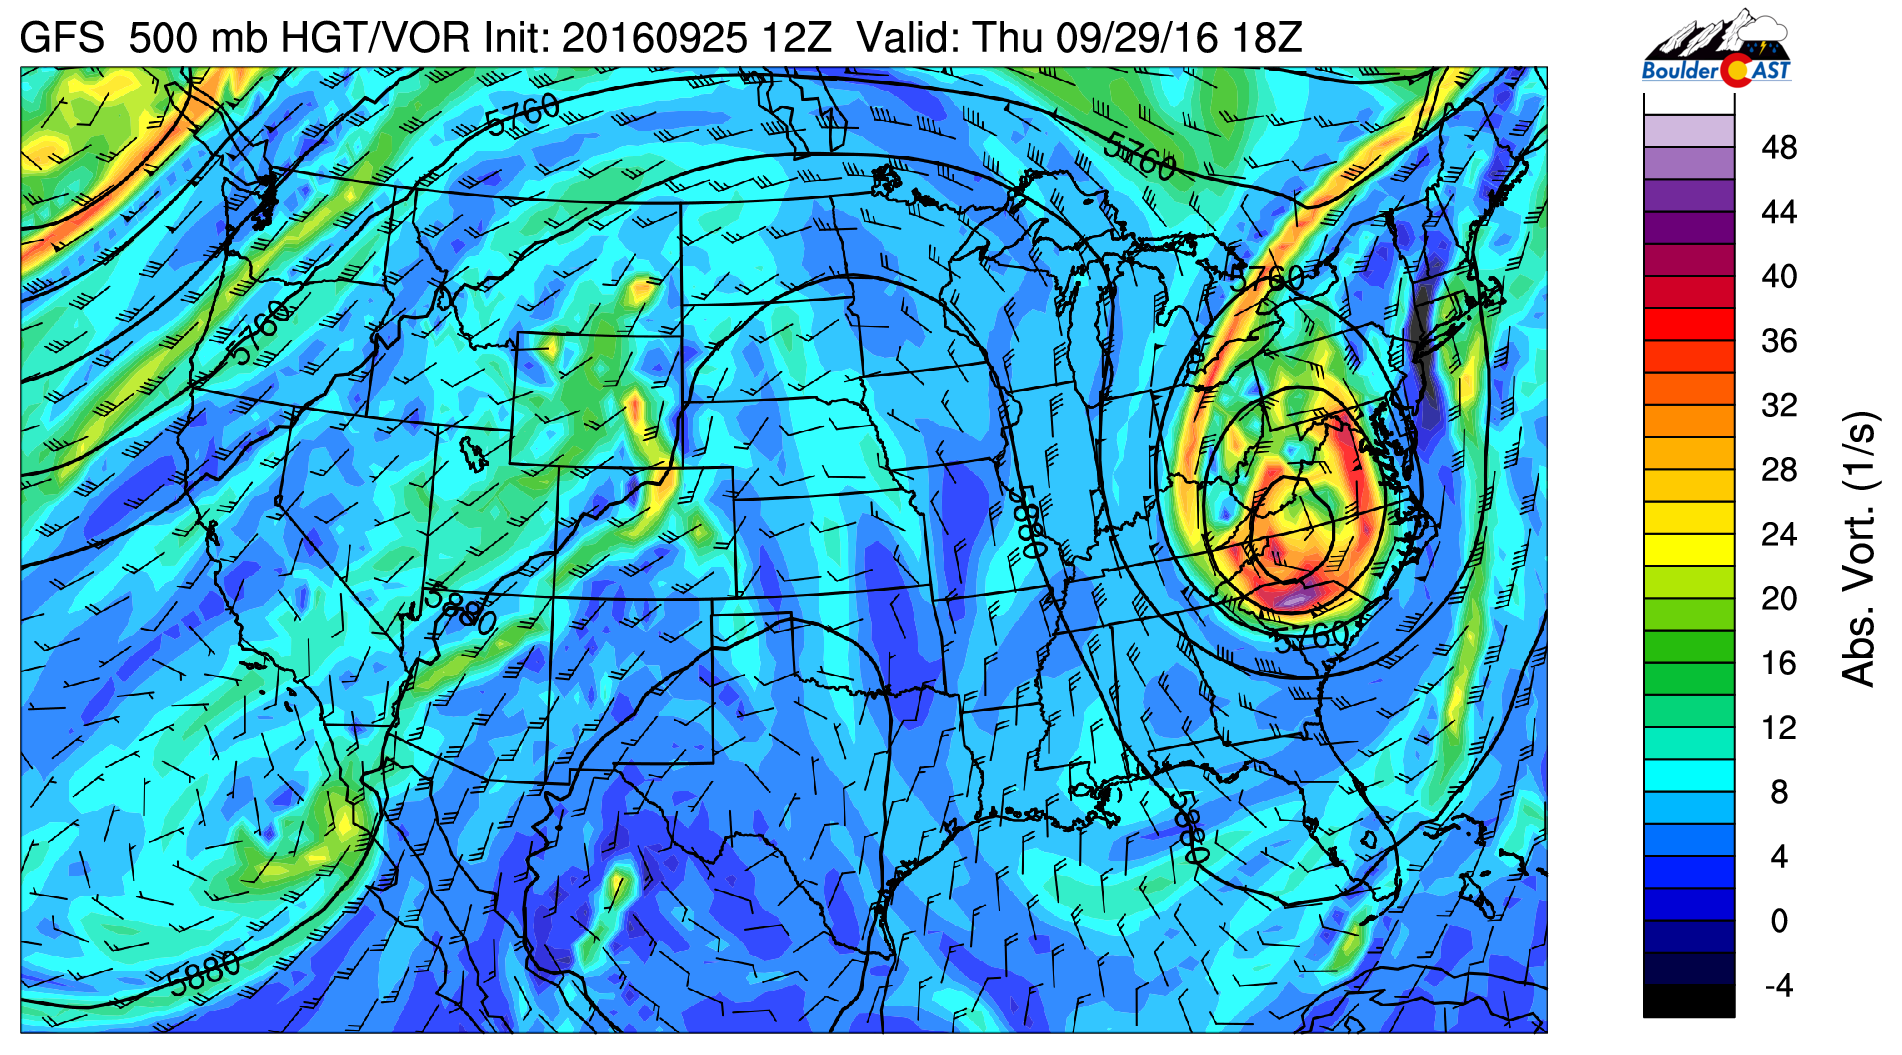 GFS 500 mb vorticity and wind for Thursday